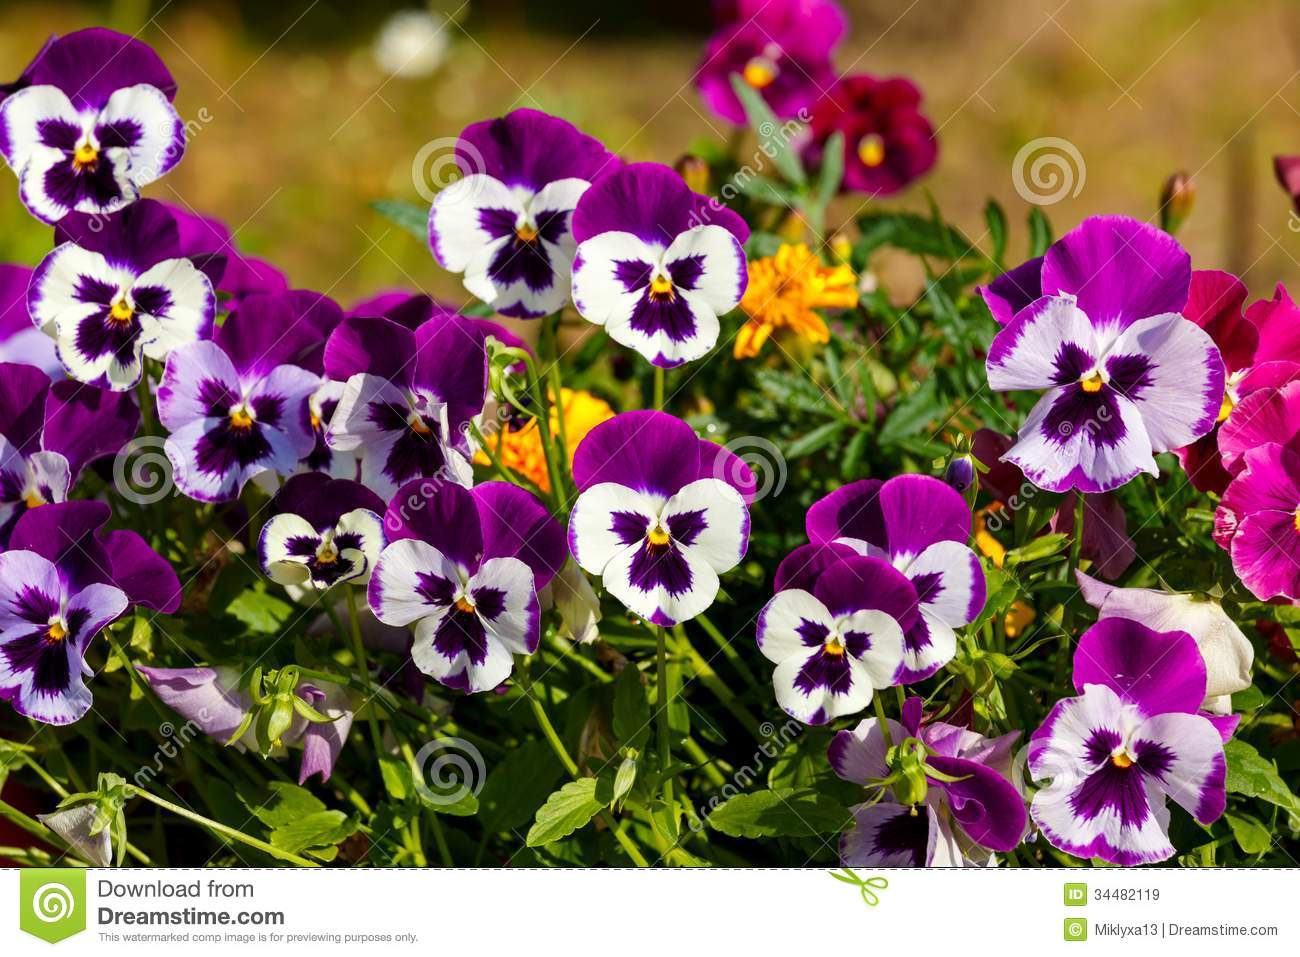 Pansy Flower Royalty Free Stock Images - Image: 34482119